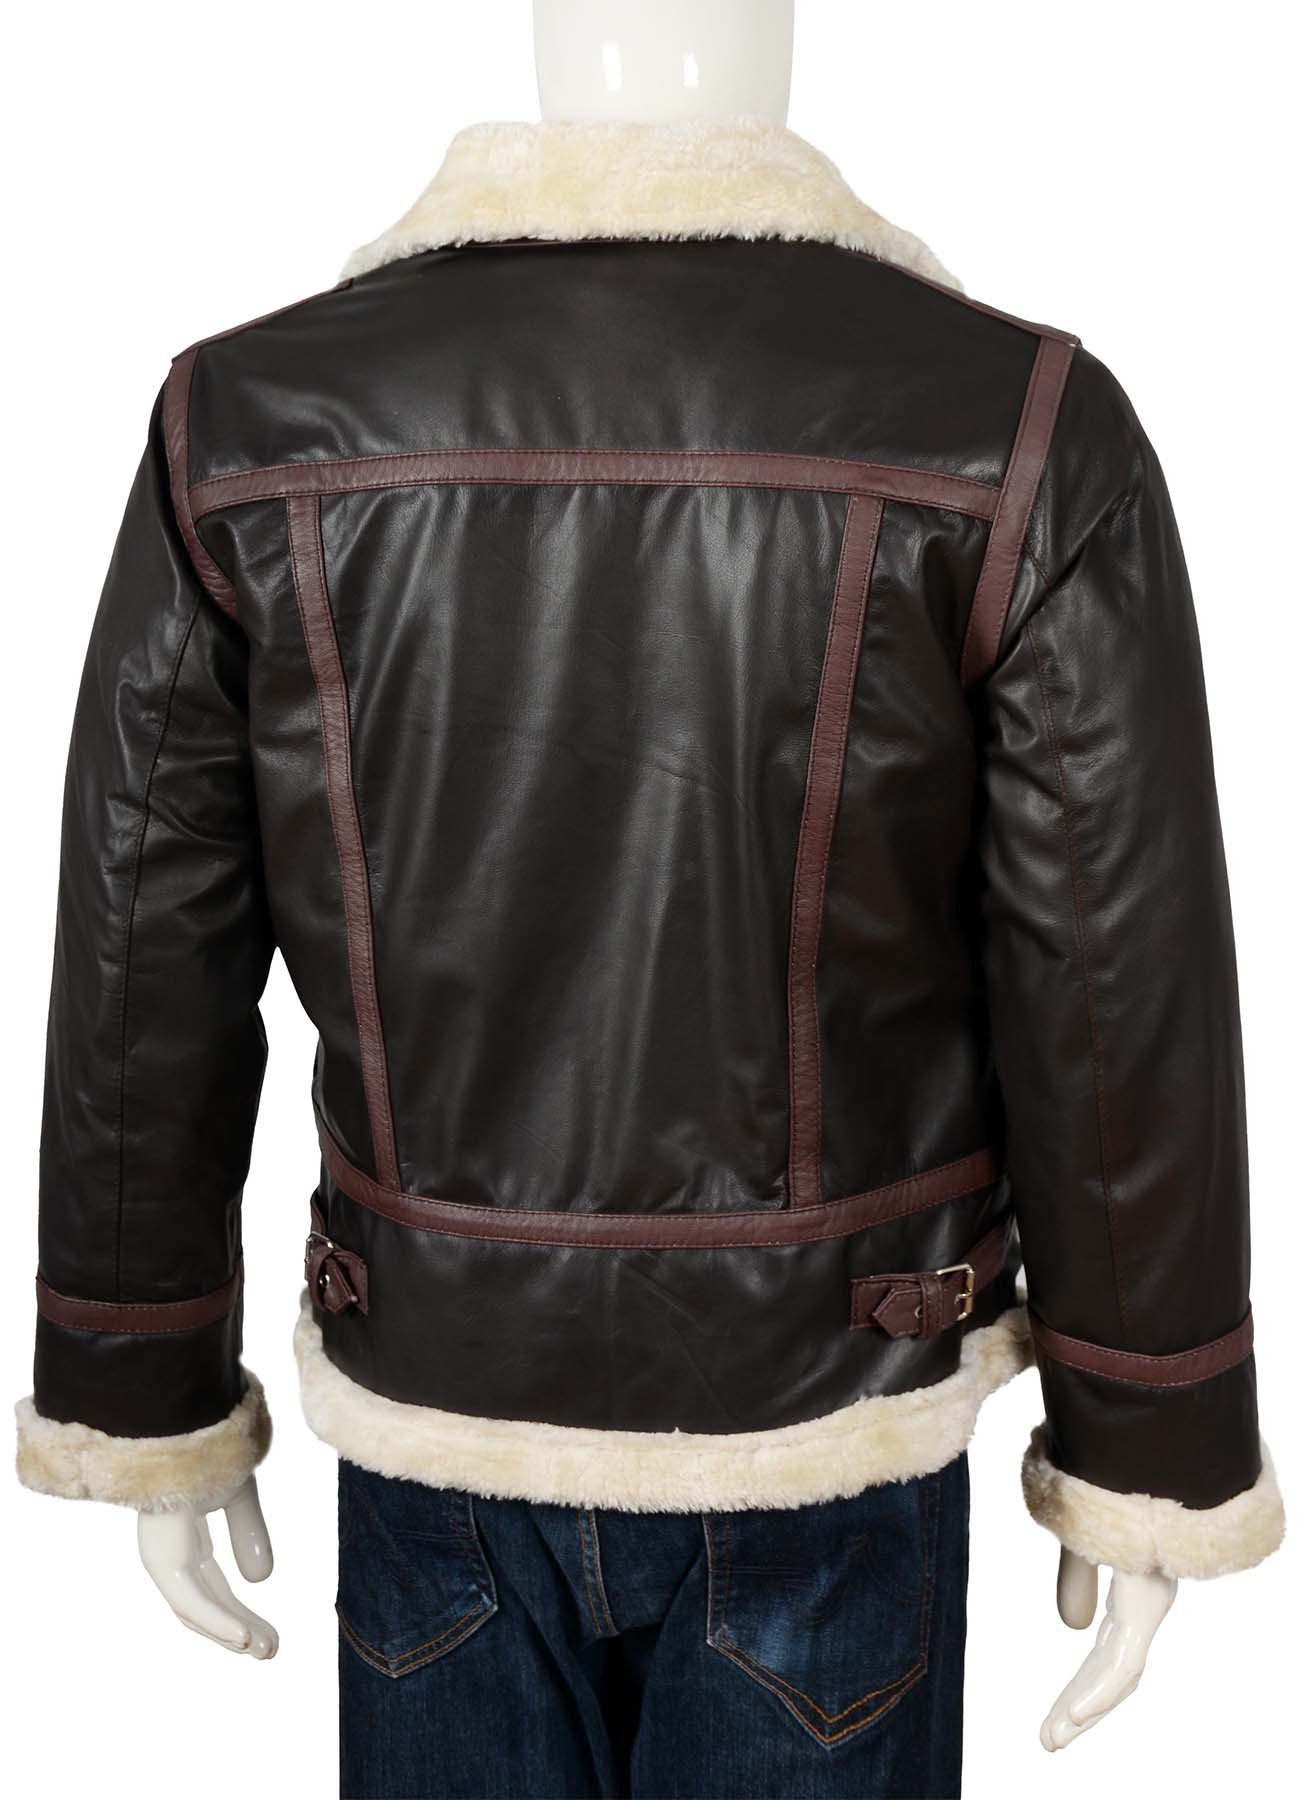 B3 Brown Bomber Shearling Jacket With Reddish Brown Stripes